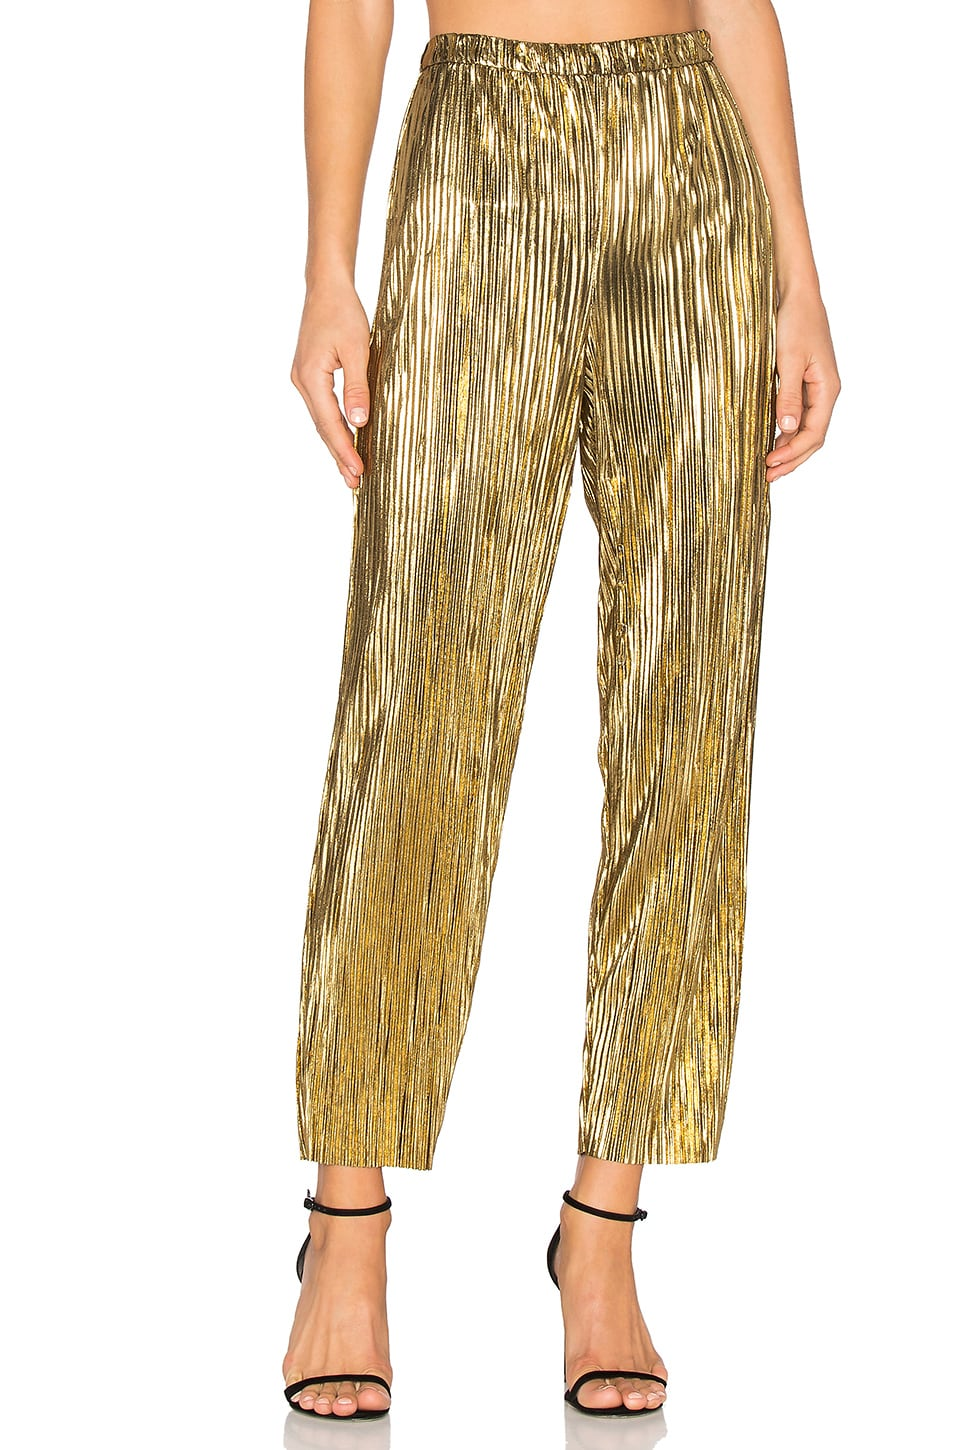 House of Harlow 1960 x REVOLVE Kate Pants in Gold